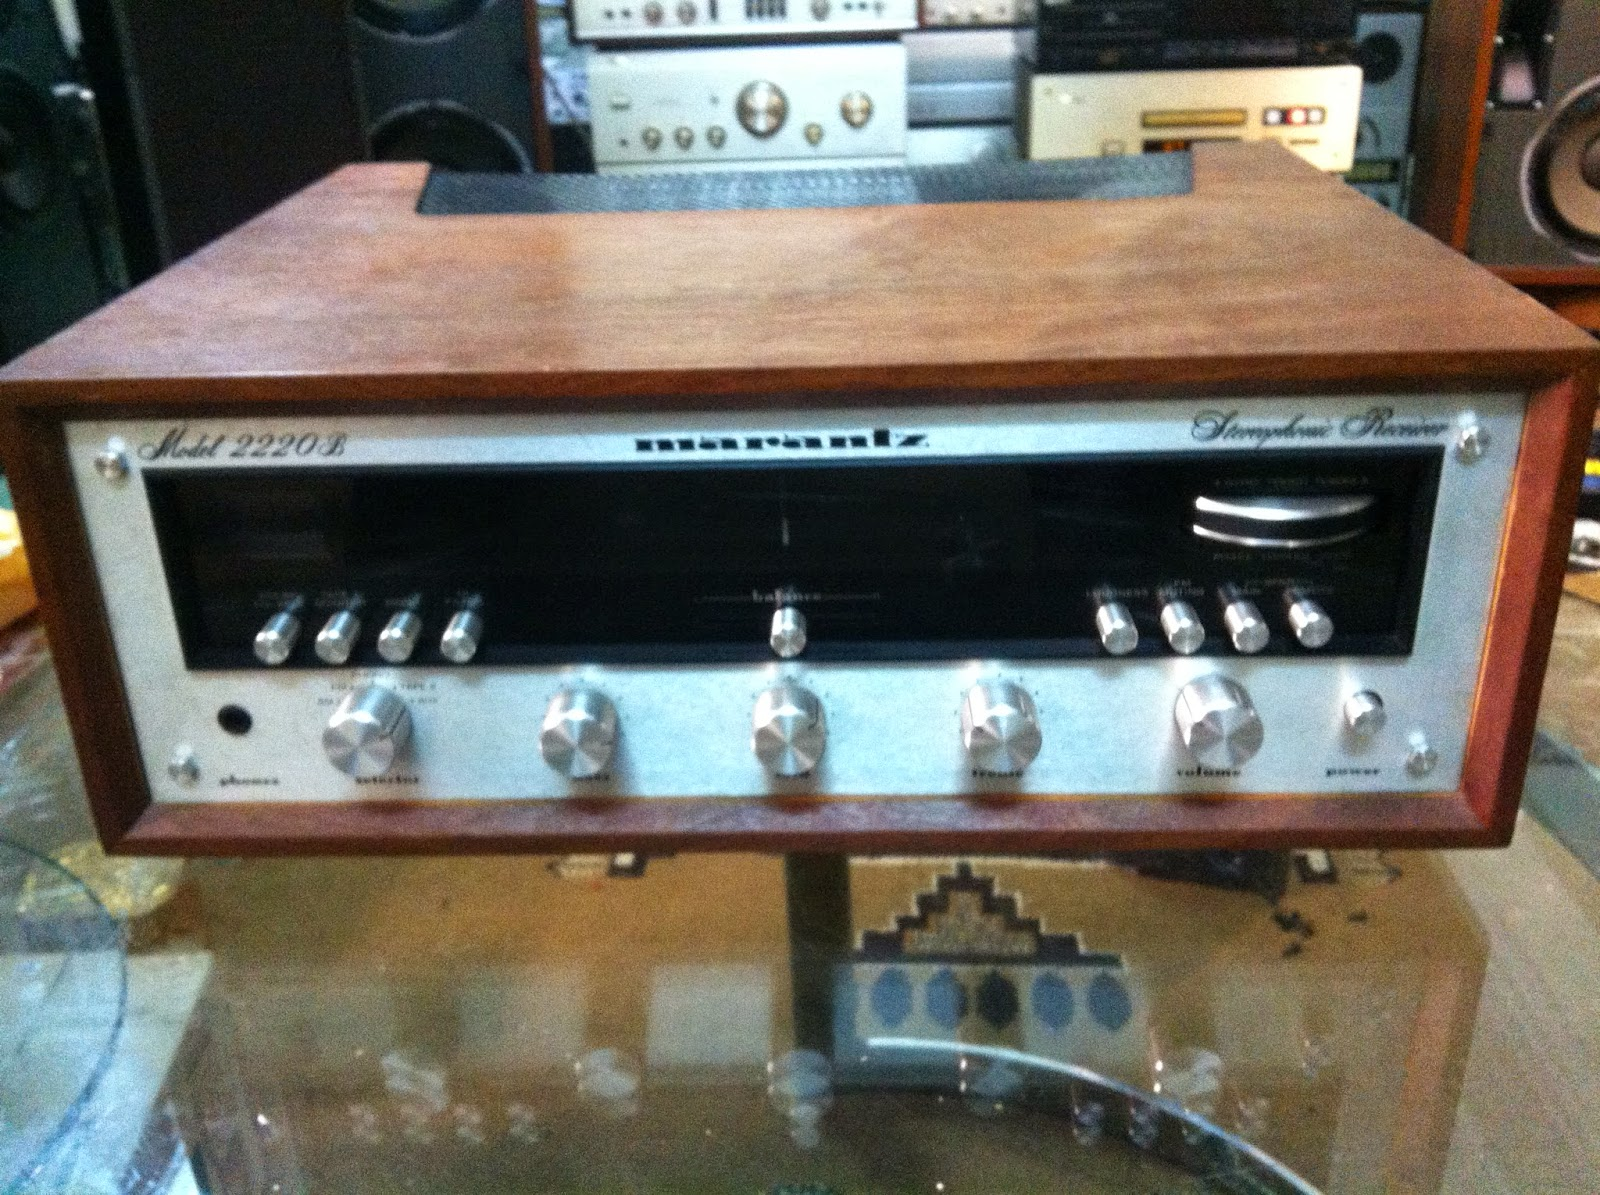 Amply Marantz 2220 - Made in Japan